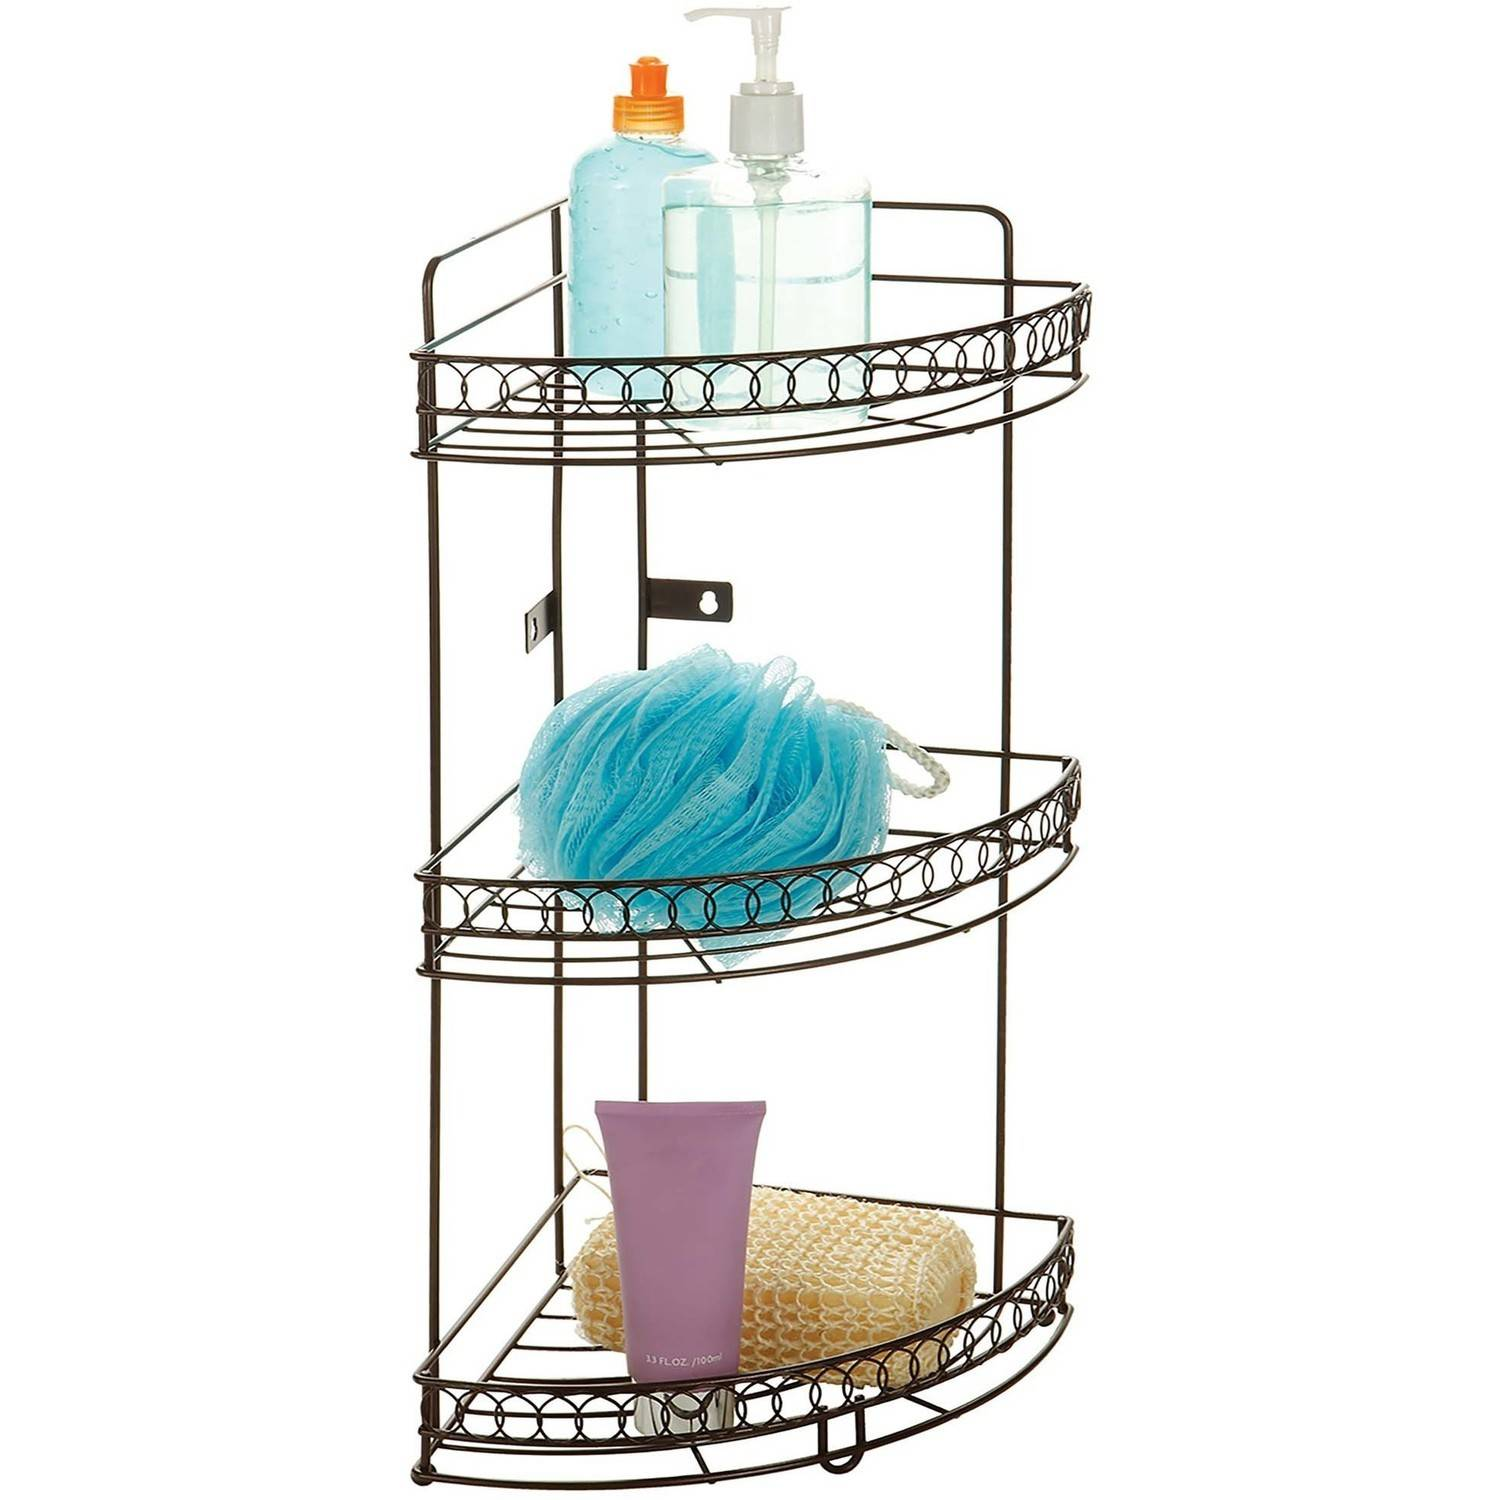 Bath Bliss 3-Tier Corner Bath Shelf, Bronze Curls - Walmart.com